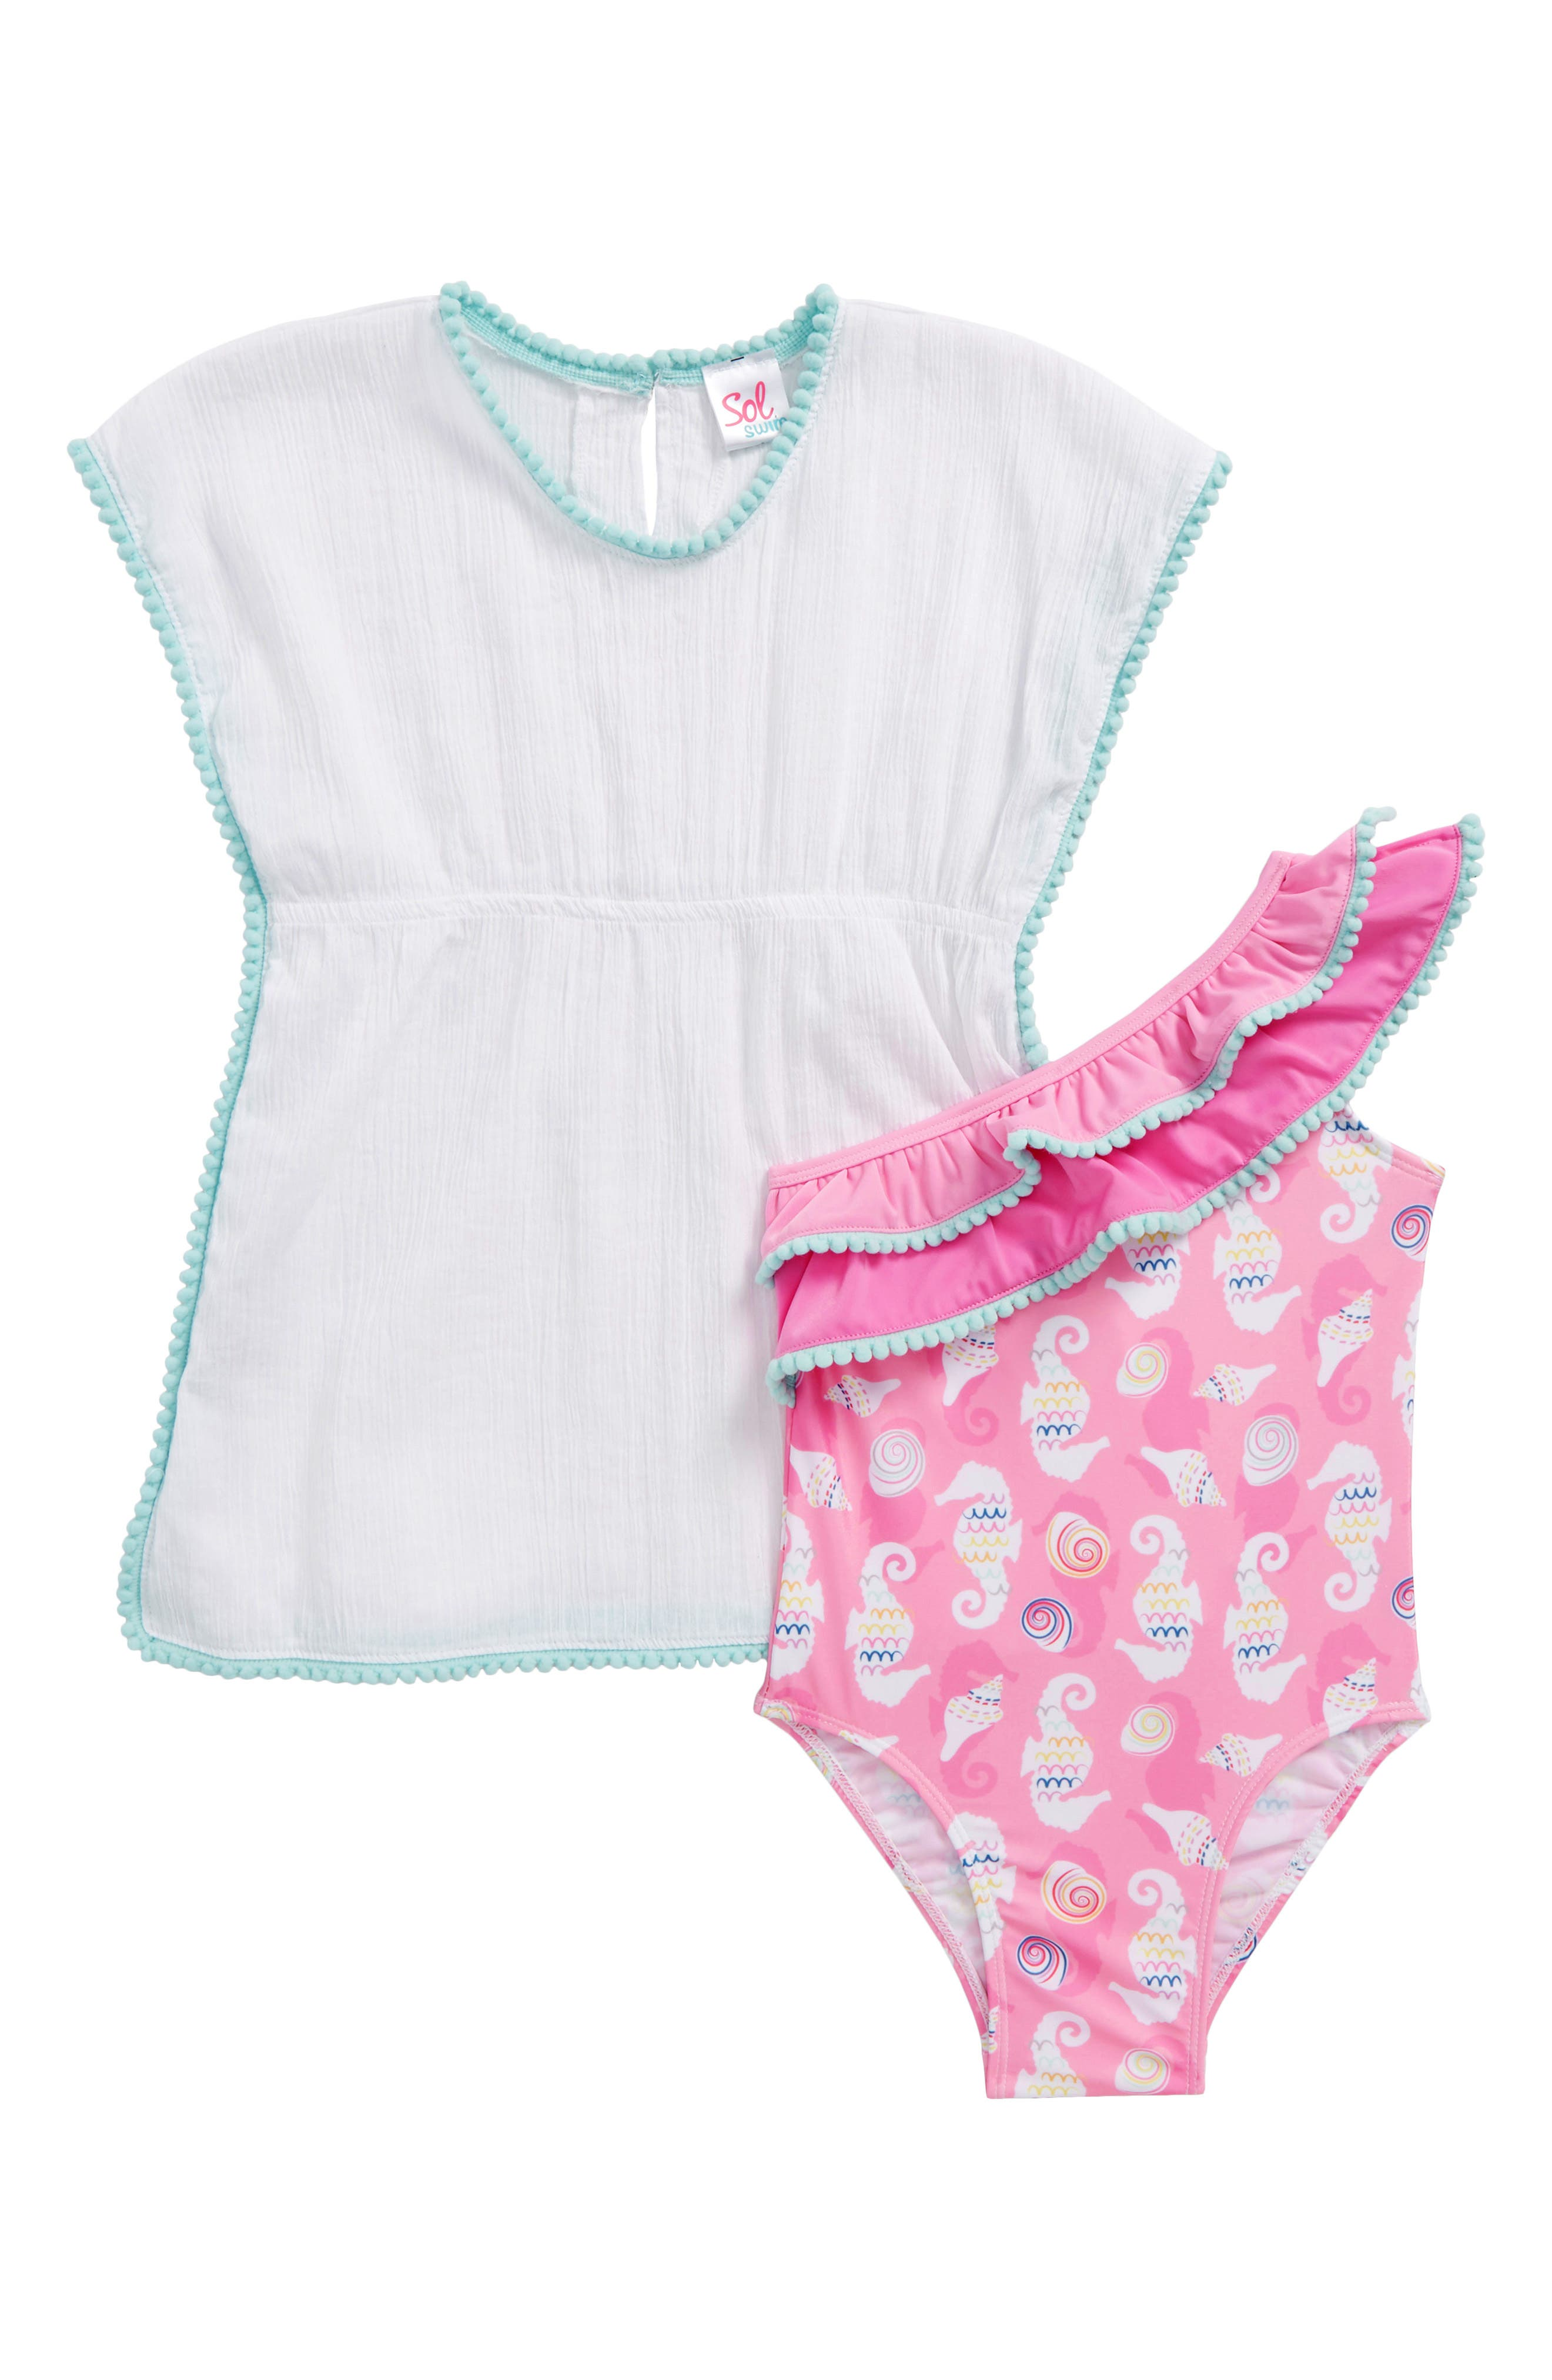 Seahorse One-Piece Swimsuit & Cover-Up Set,                             Main thumbnail 1, color,                             650